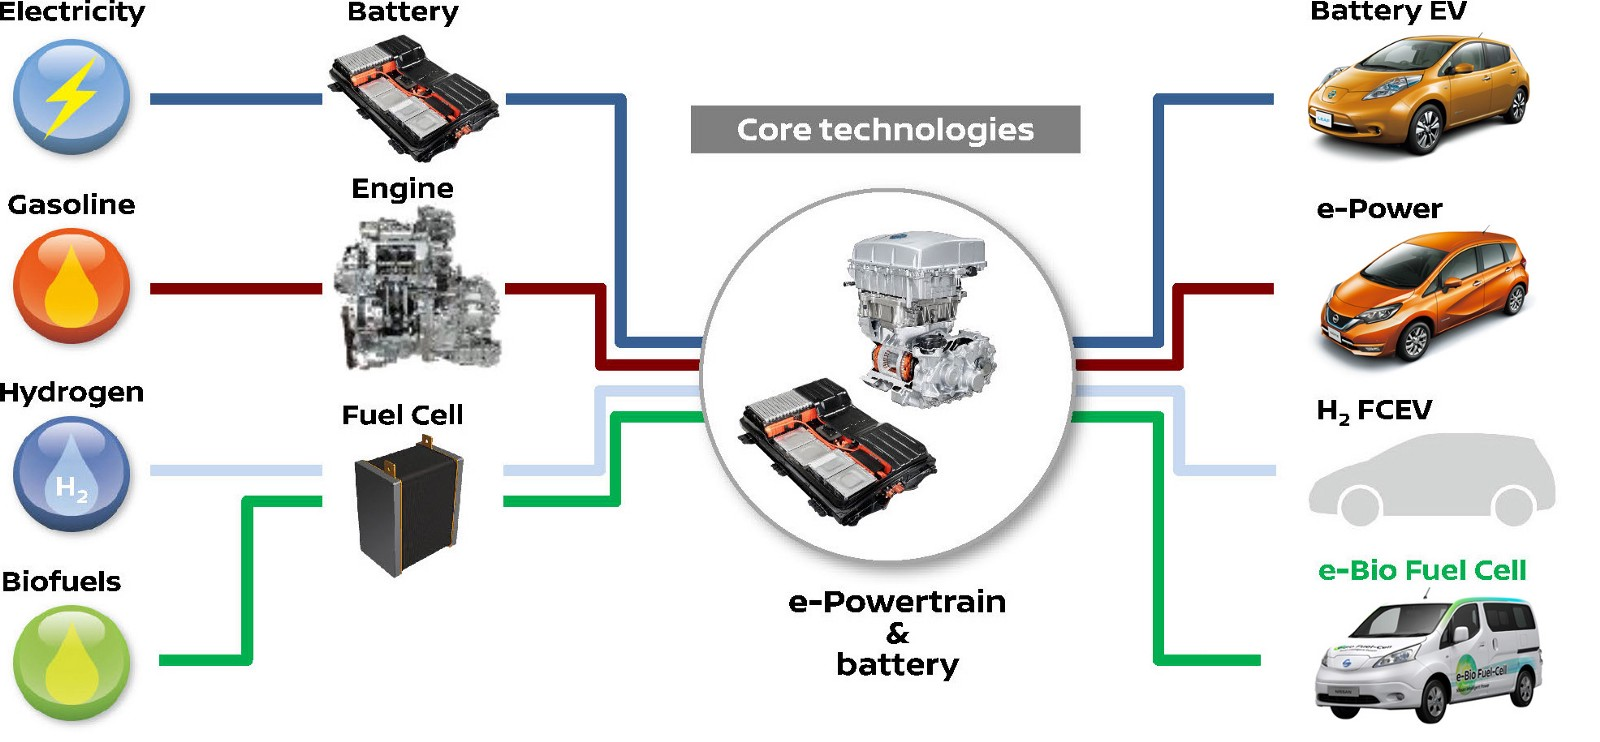 New E Power Innovative 100 Electric Motor Drive System Sets A Nissan Leaf Engine Diagram Is Part Of Intelligent Which Showcases More Efficient Technologies While Increasing Driving Pleasure In The Age Cars